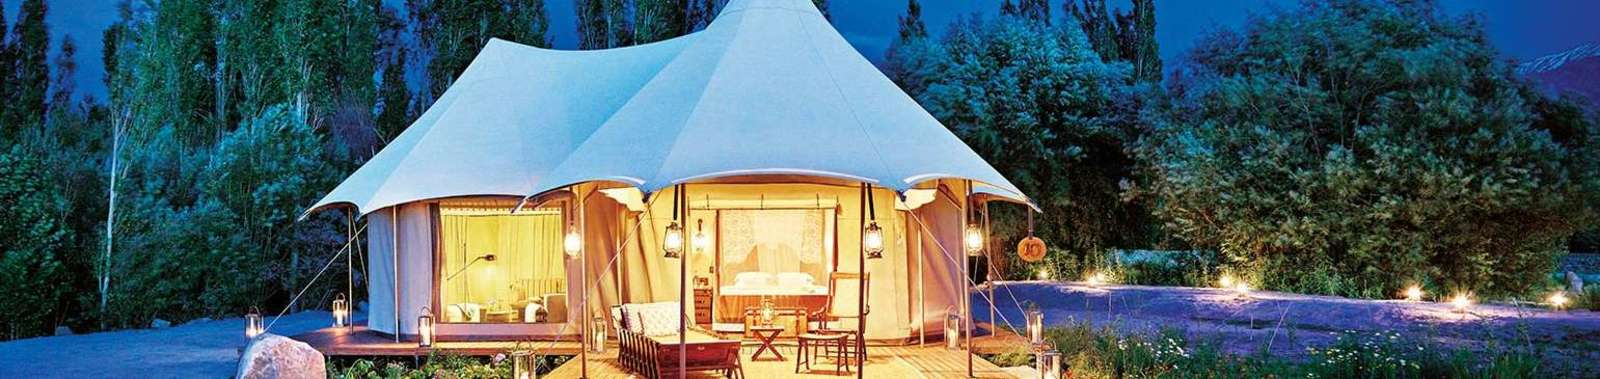 Stay in a tented camp on a luxury holiday to Ladakh, India